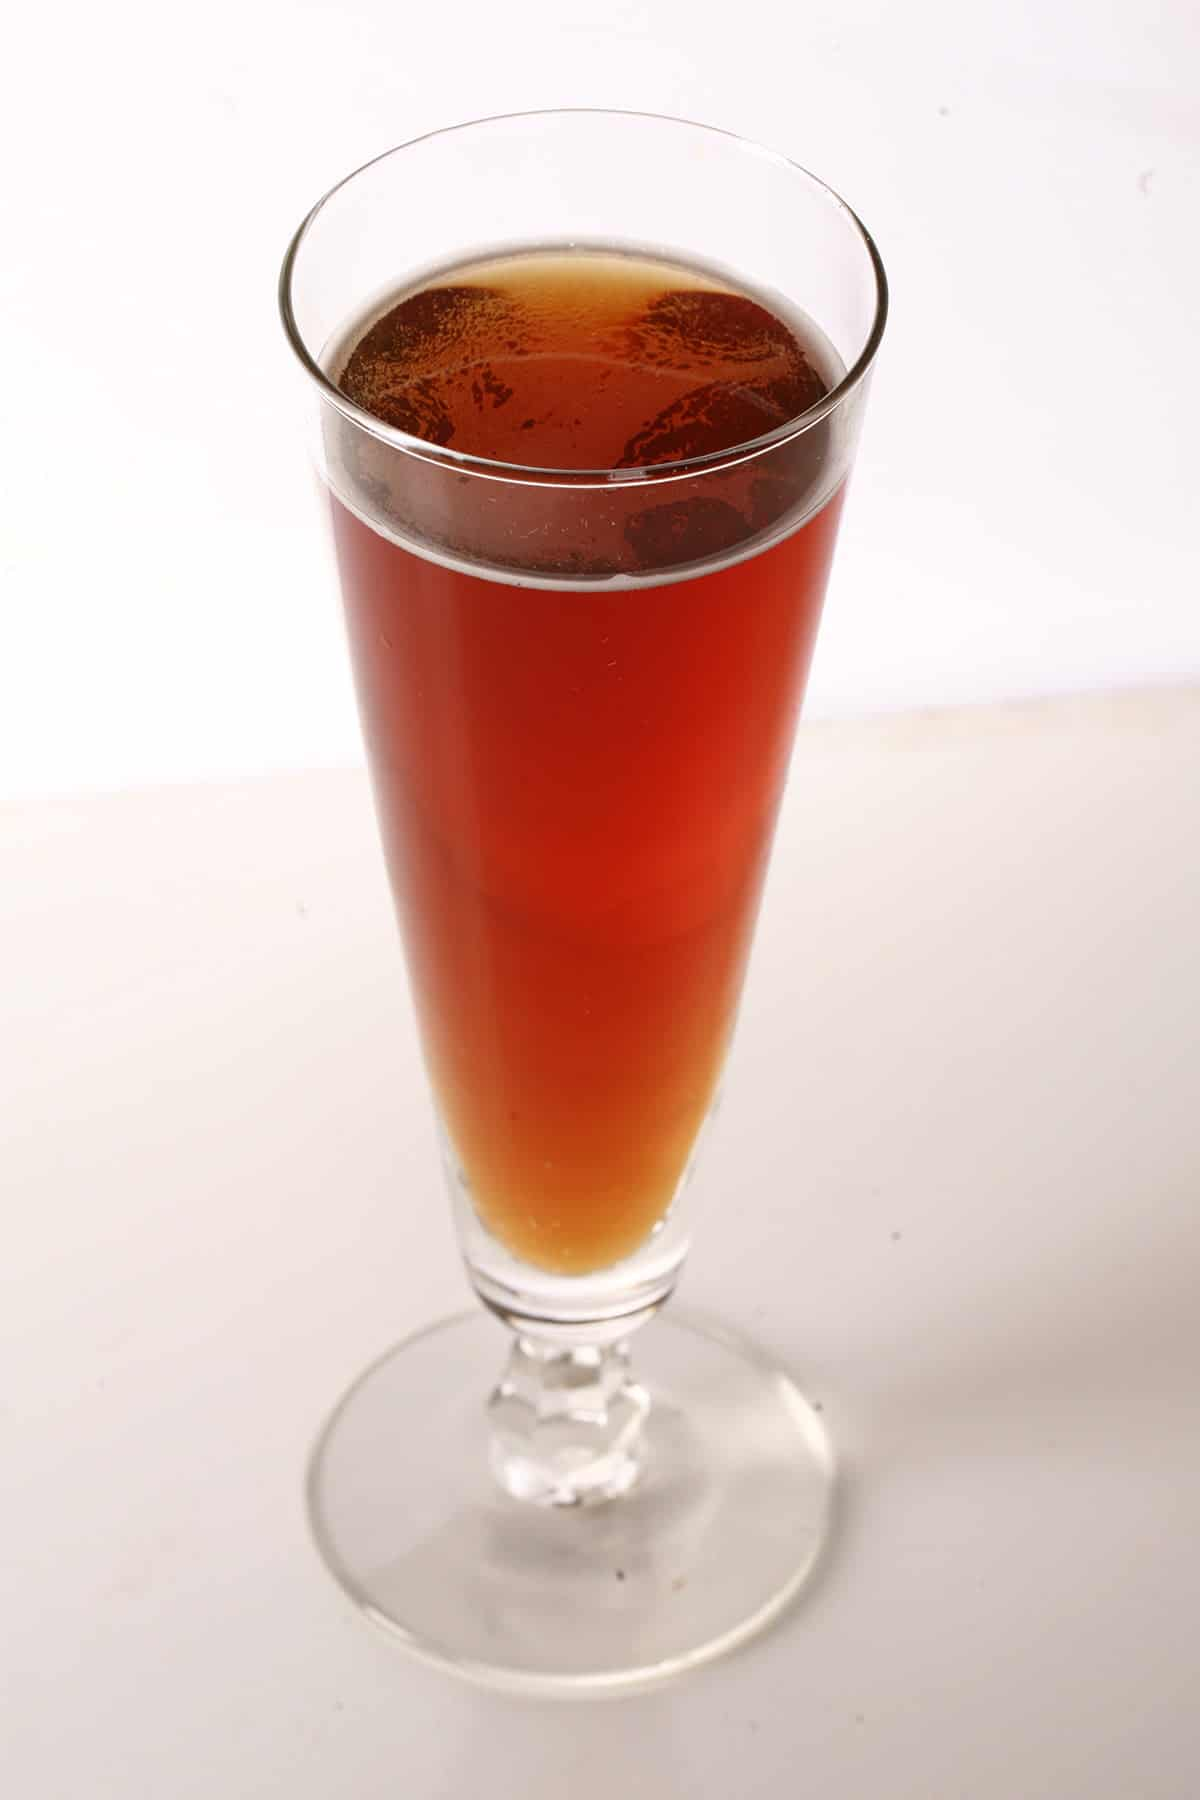 Photo of a tall glass of deep amber apple cider - Maple Hard Apple Cider.